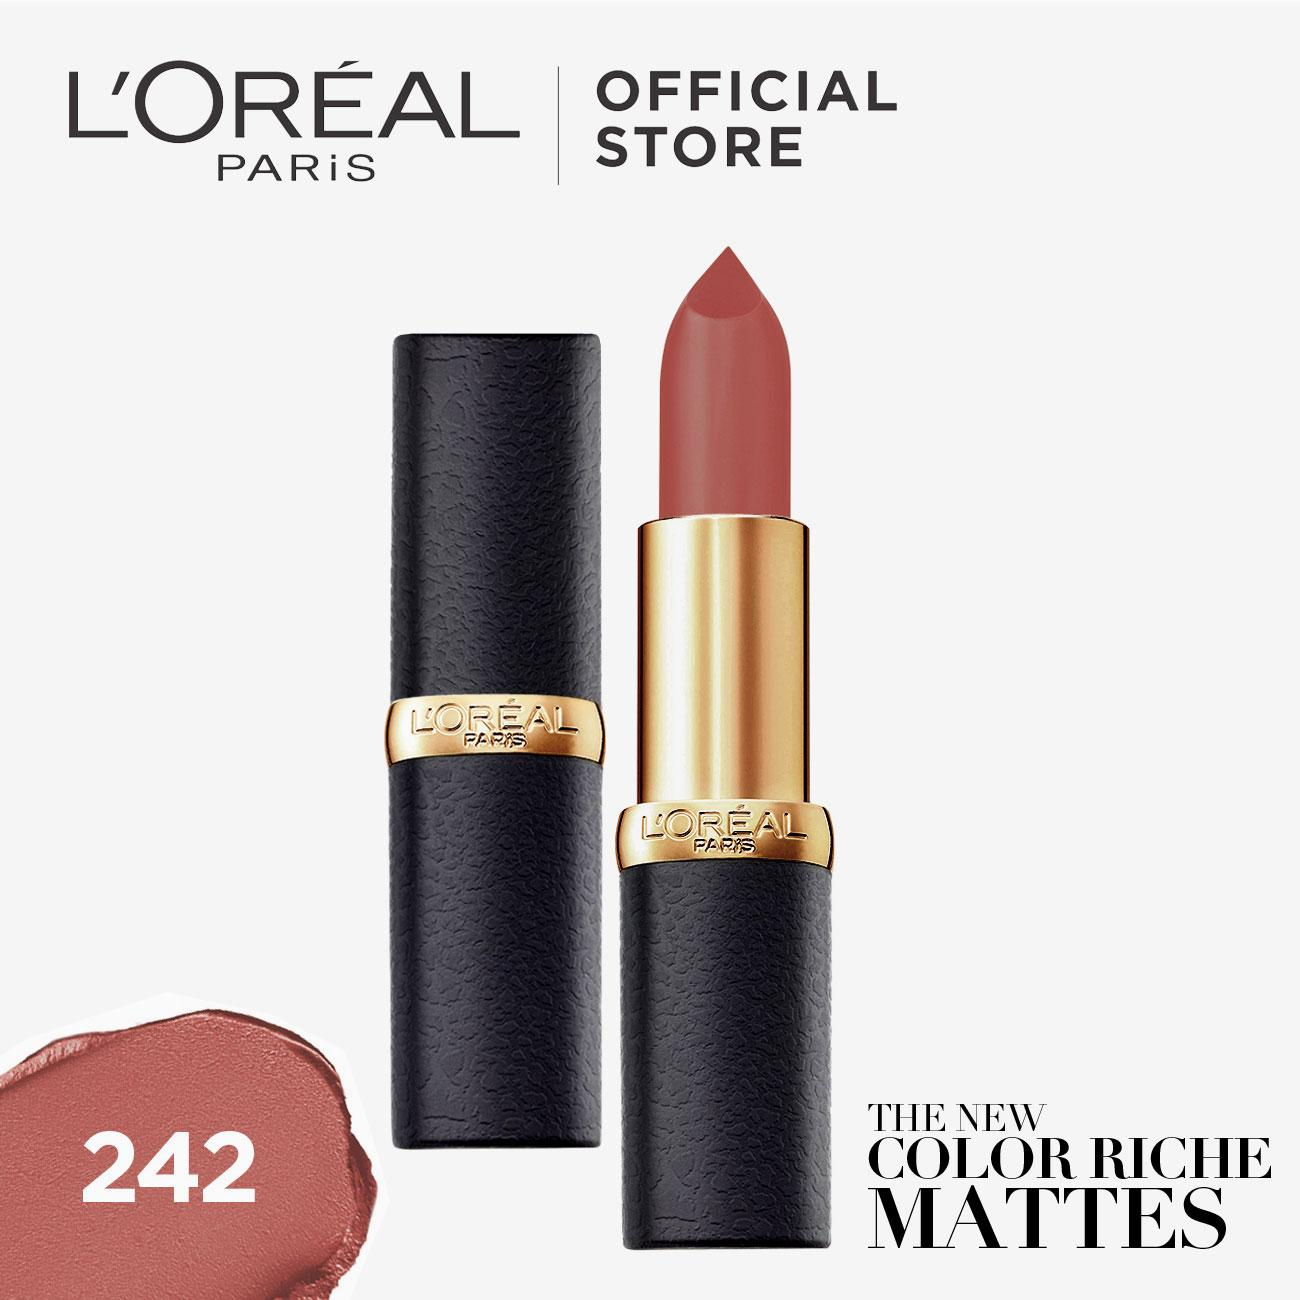 Color Riche Matte Lipstick By Loreal Paris By Loreal.